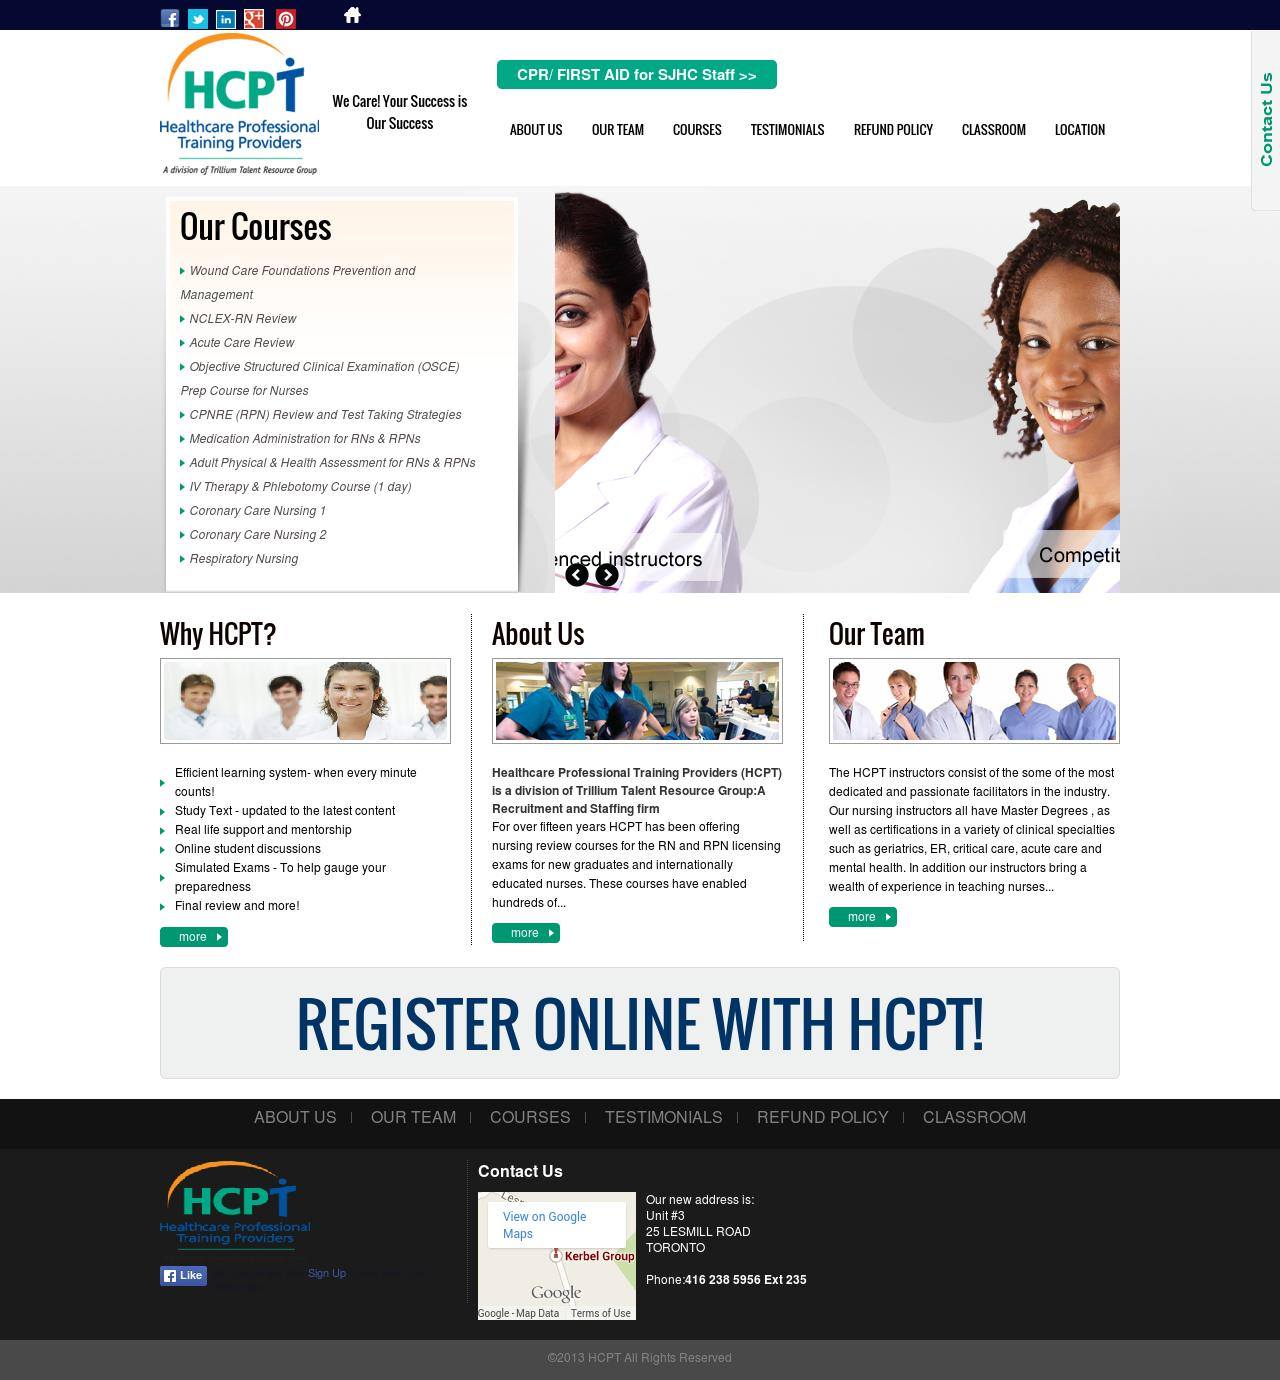 http://www.hcprofessionals.com